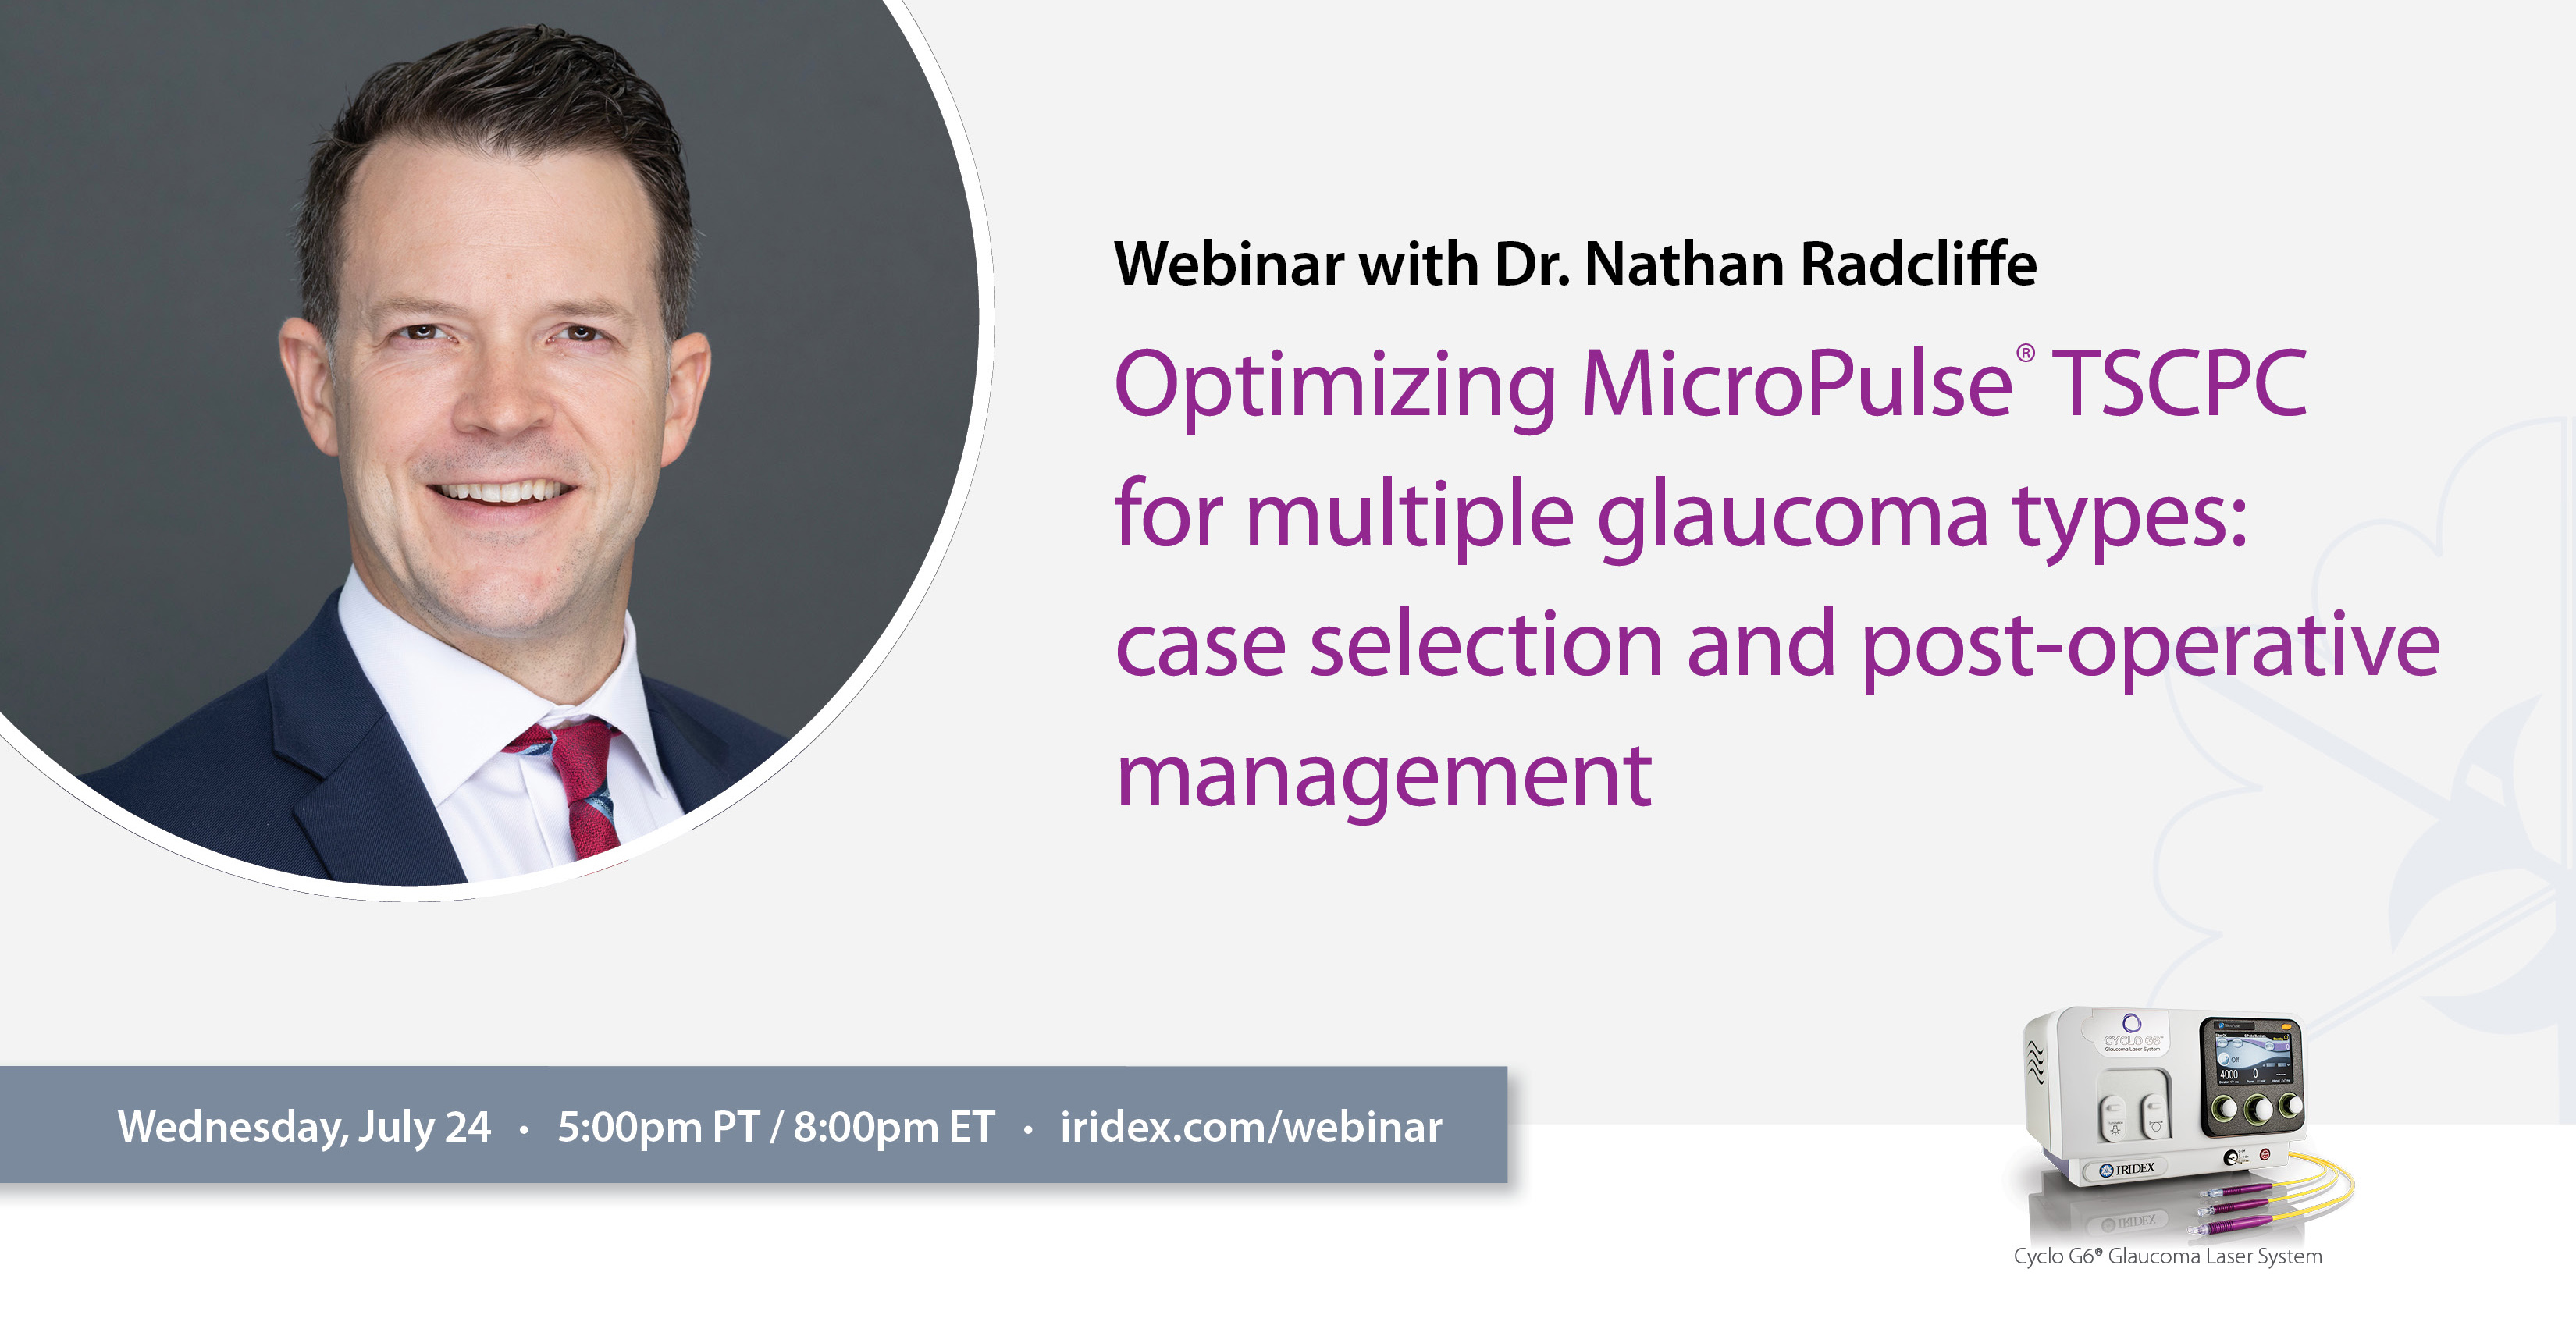 Webinar: Optimizing MicroPulse® TSCPC for multiple glaucoma types: case selection and post-operative management